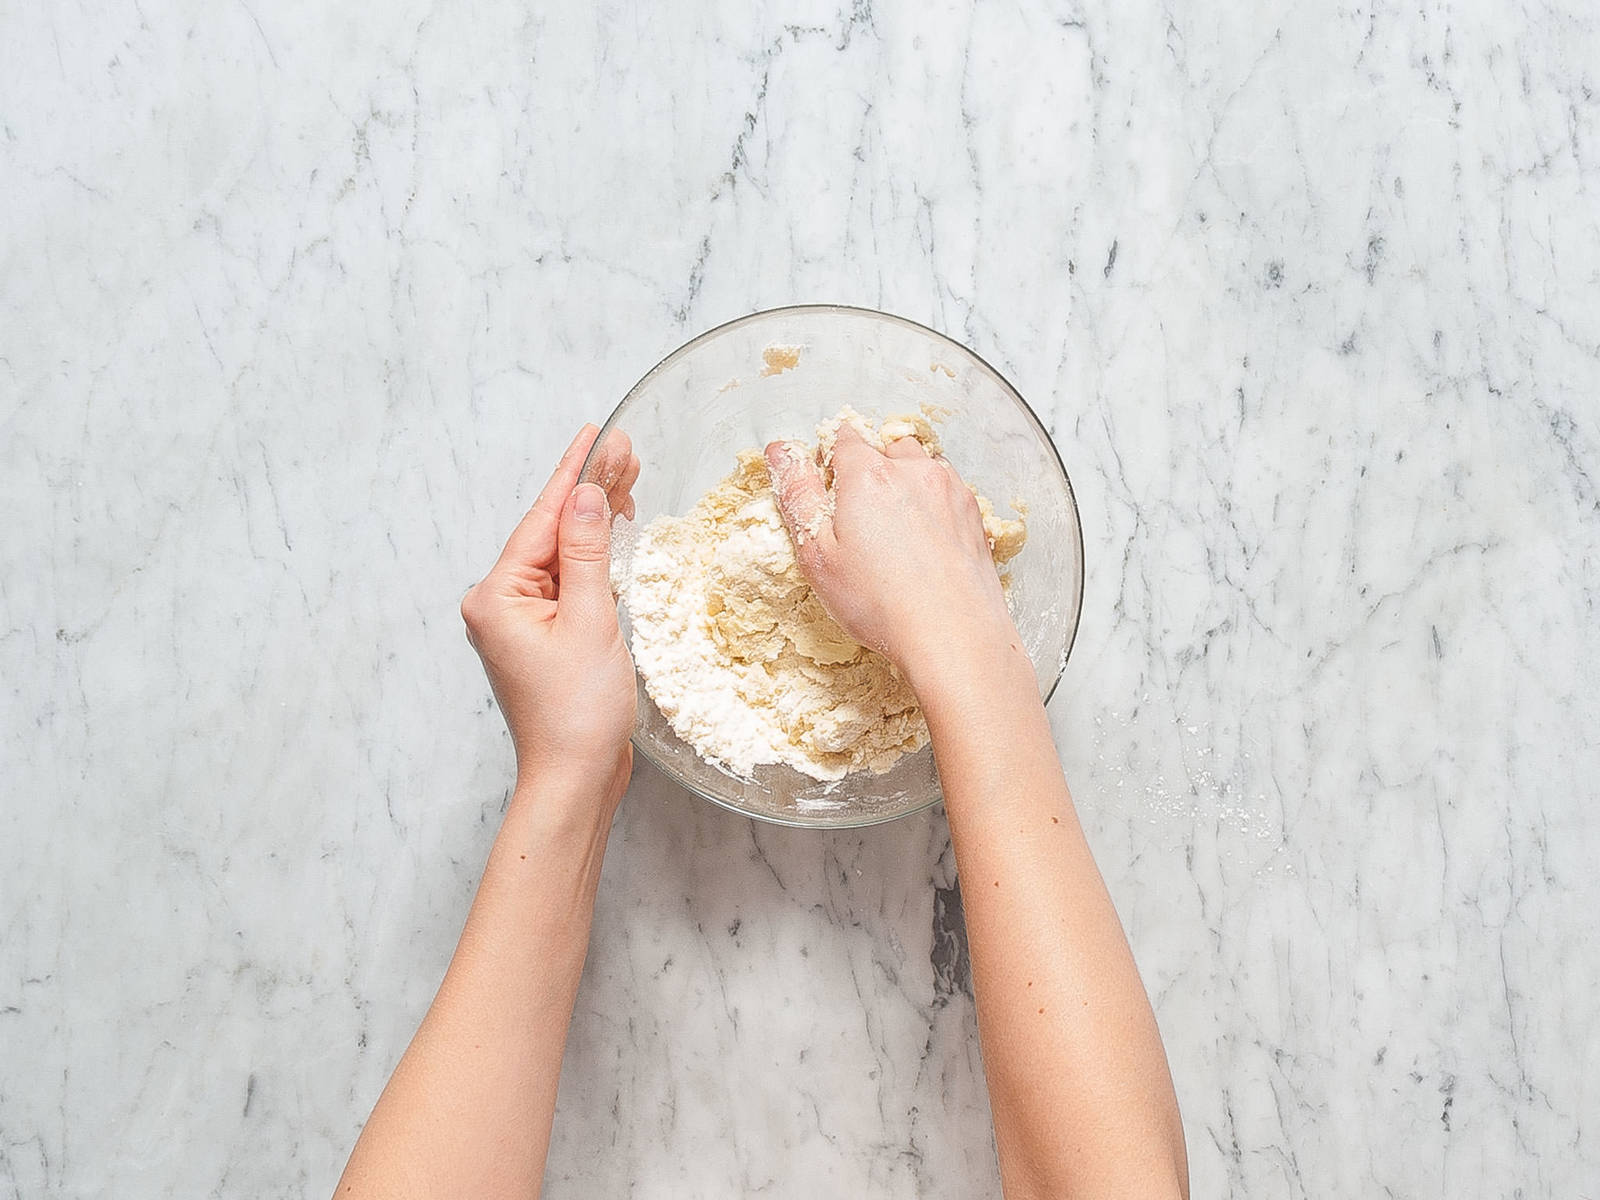 Add flour and butter to a bowl and mix until large crumbs form. Add sugar, salt, and lemon zest and stir to combine. Add egg and continue to mix until a smooth dough forms. Wrap dough in plastic foil and refrigerate for approx. 60 min.